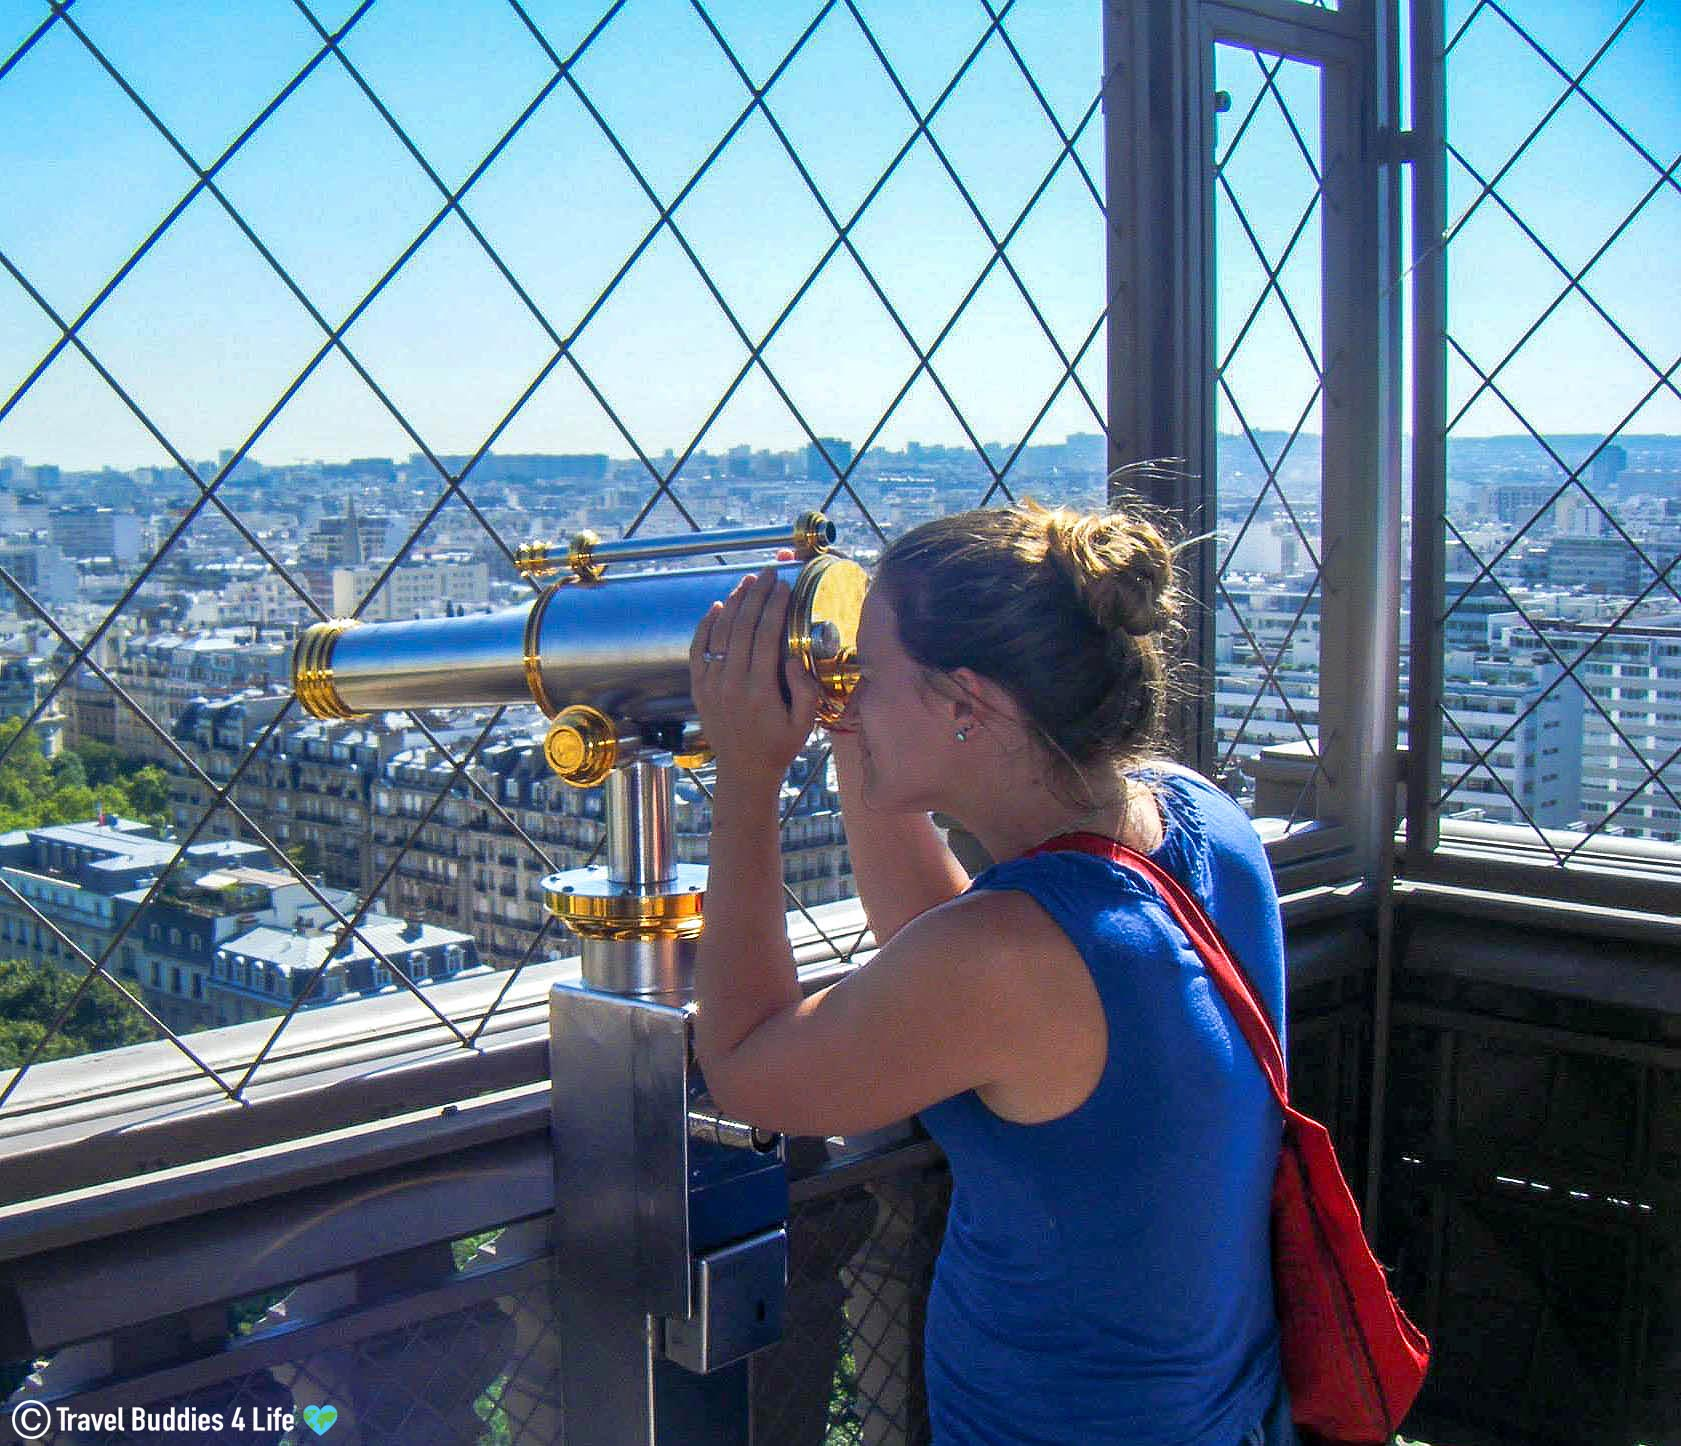 Ali Using The Spyglass Of The Eiffel Tower To Gaze Out At The Surroundings Of Paris, France, Europe